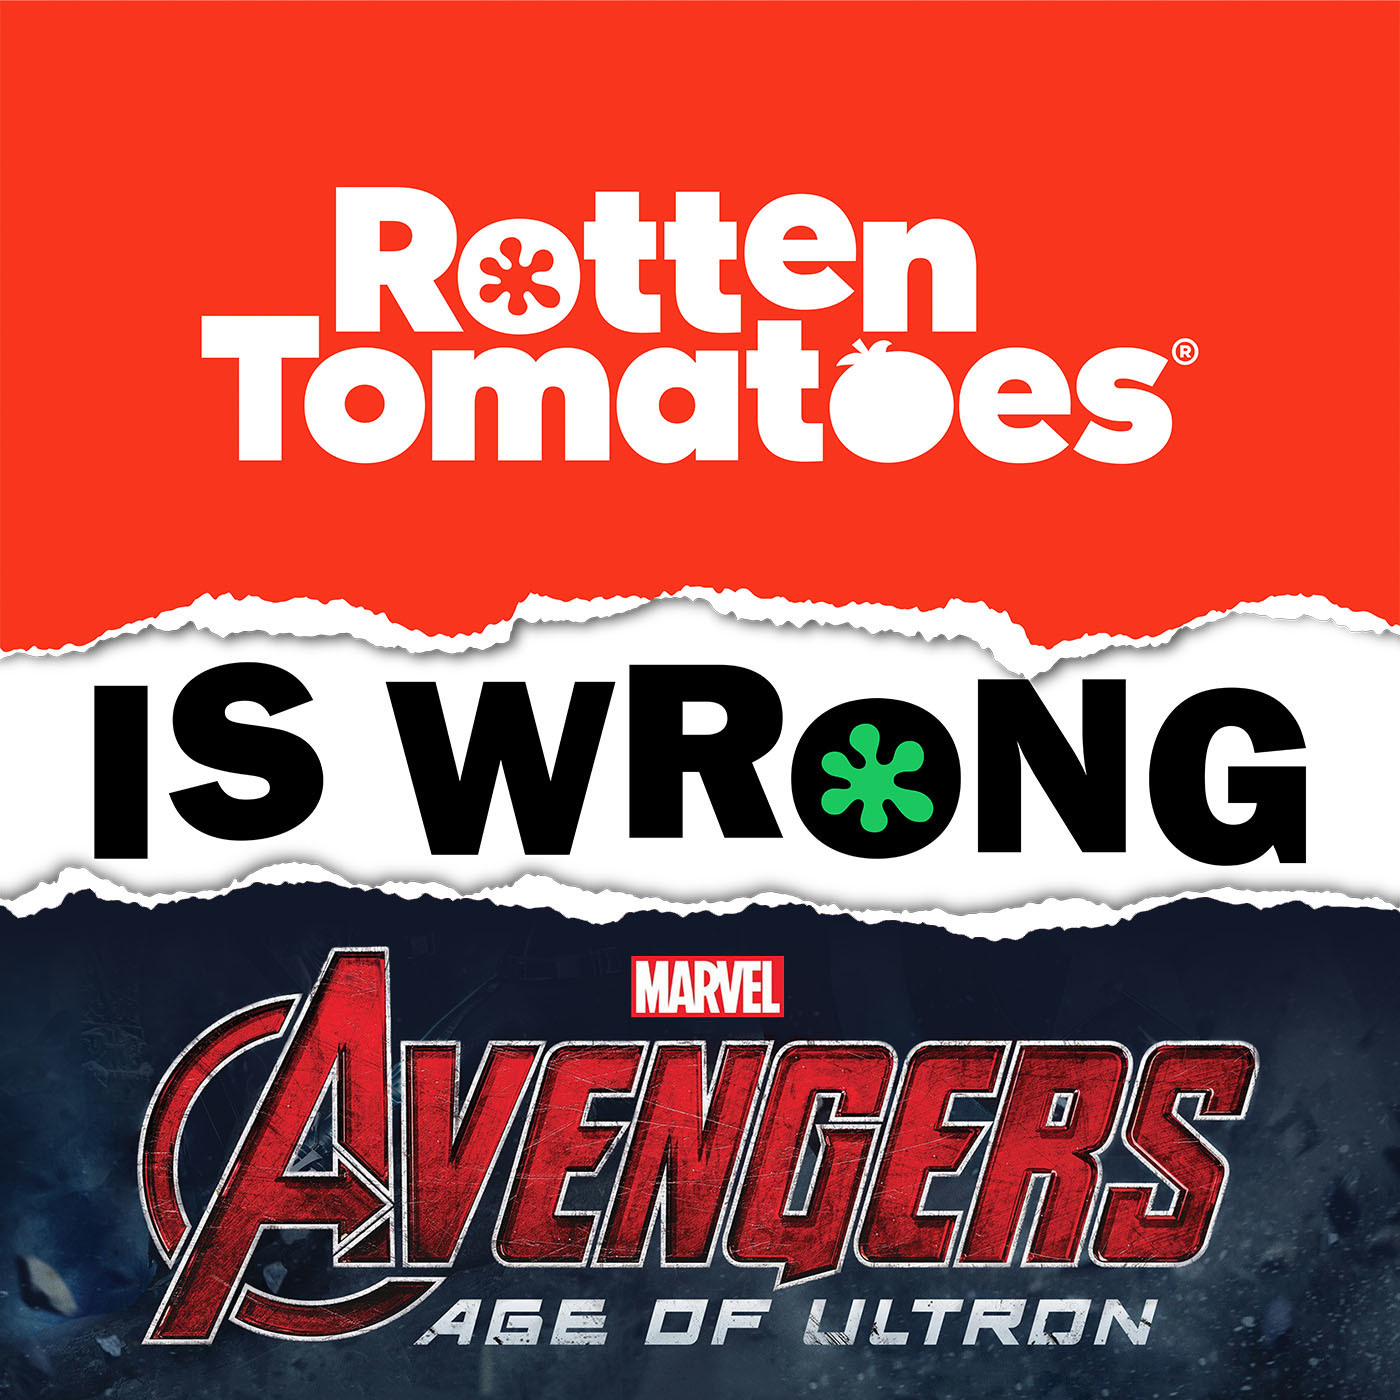 18: About… Avengers: Age of Ultron